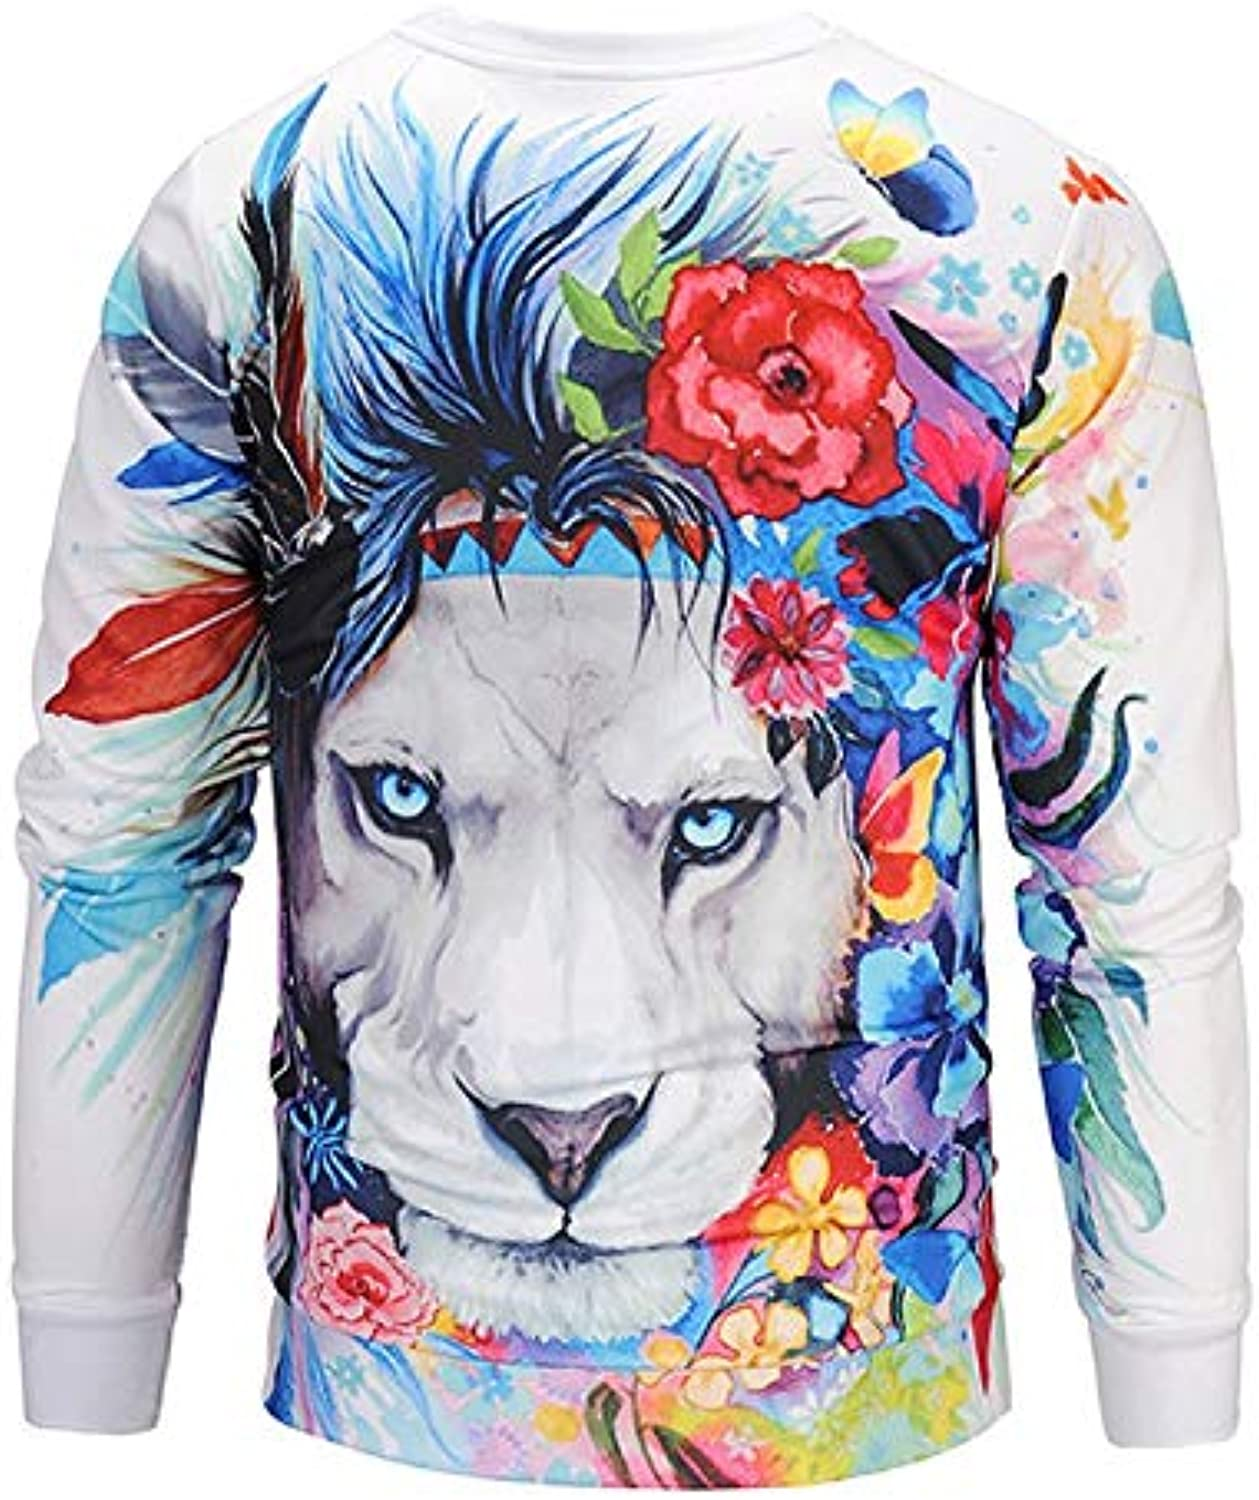 TCLYFBY Unisex 3D Digital Printing Autumn and Winter Sweater Sweater Long Sleeve Round Neck Loose Shirt Lion